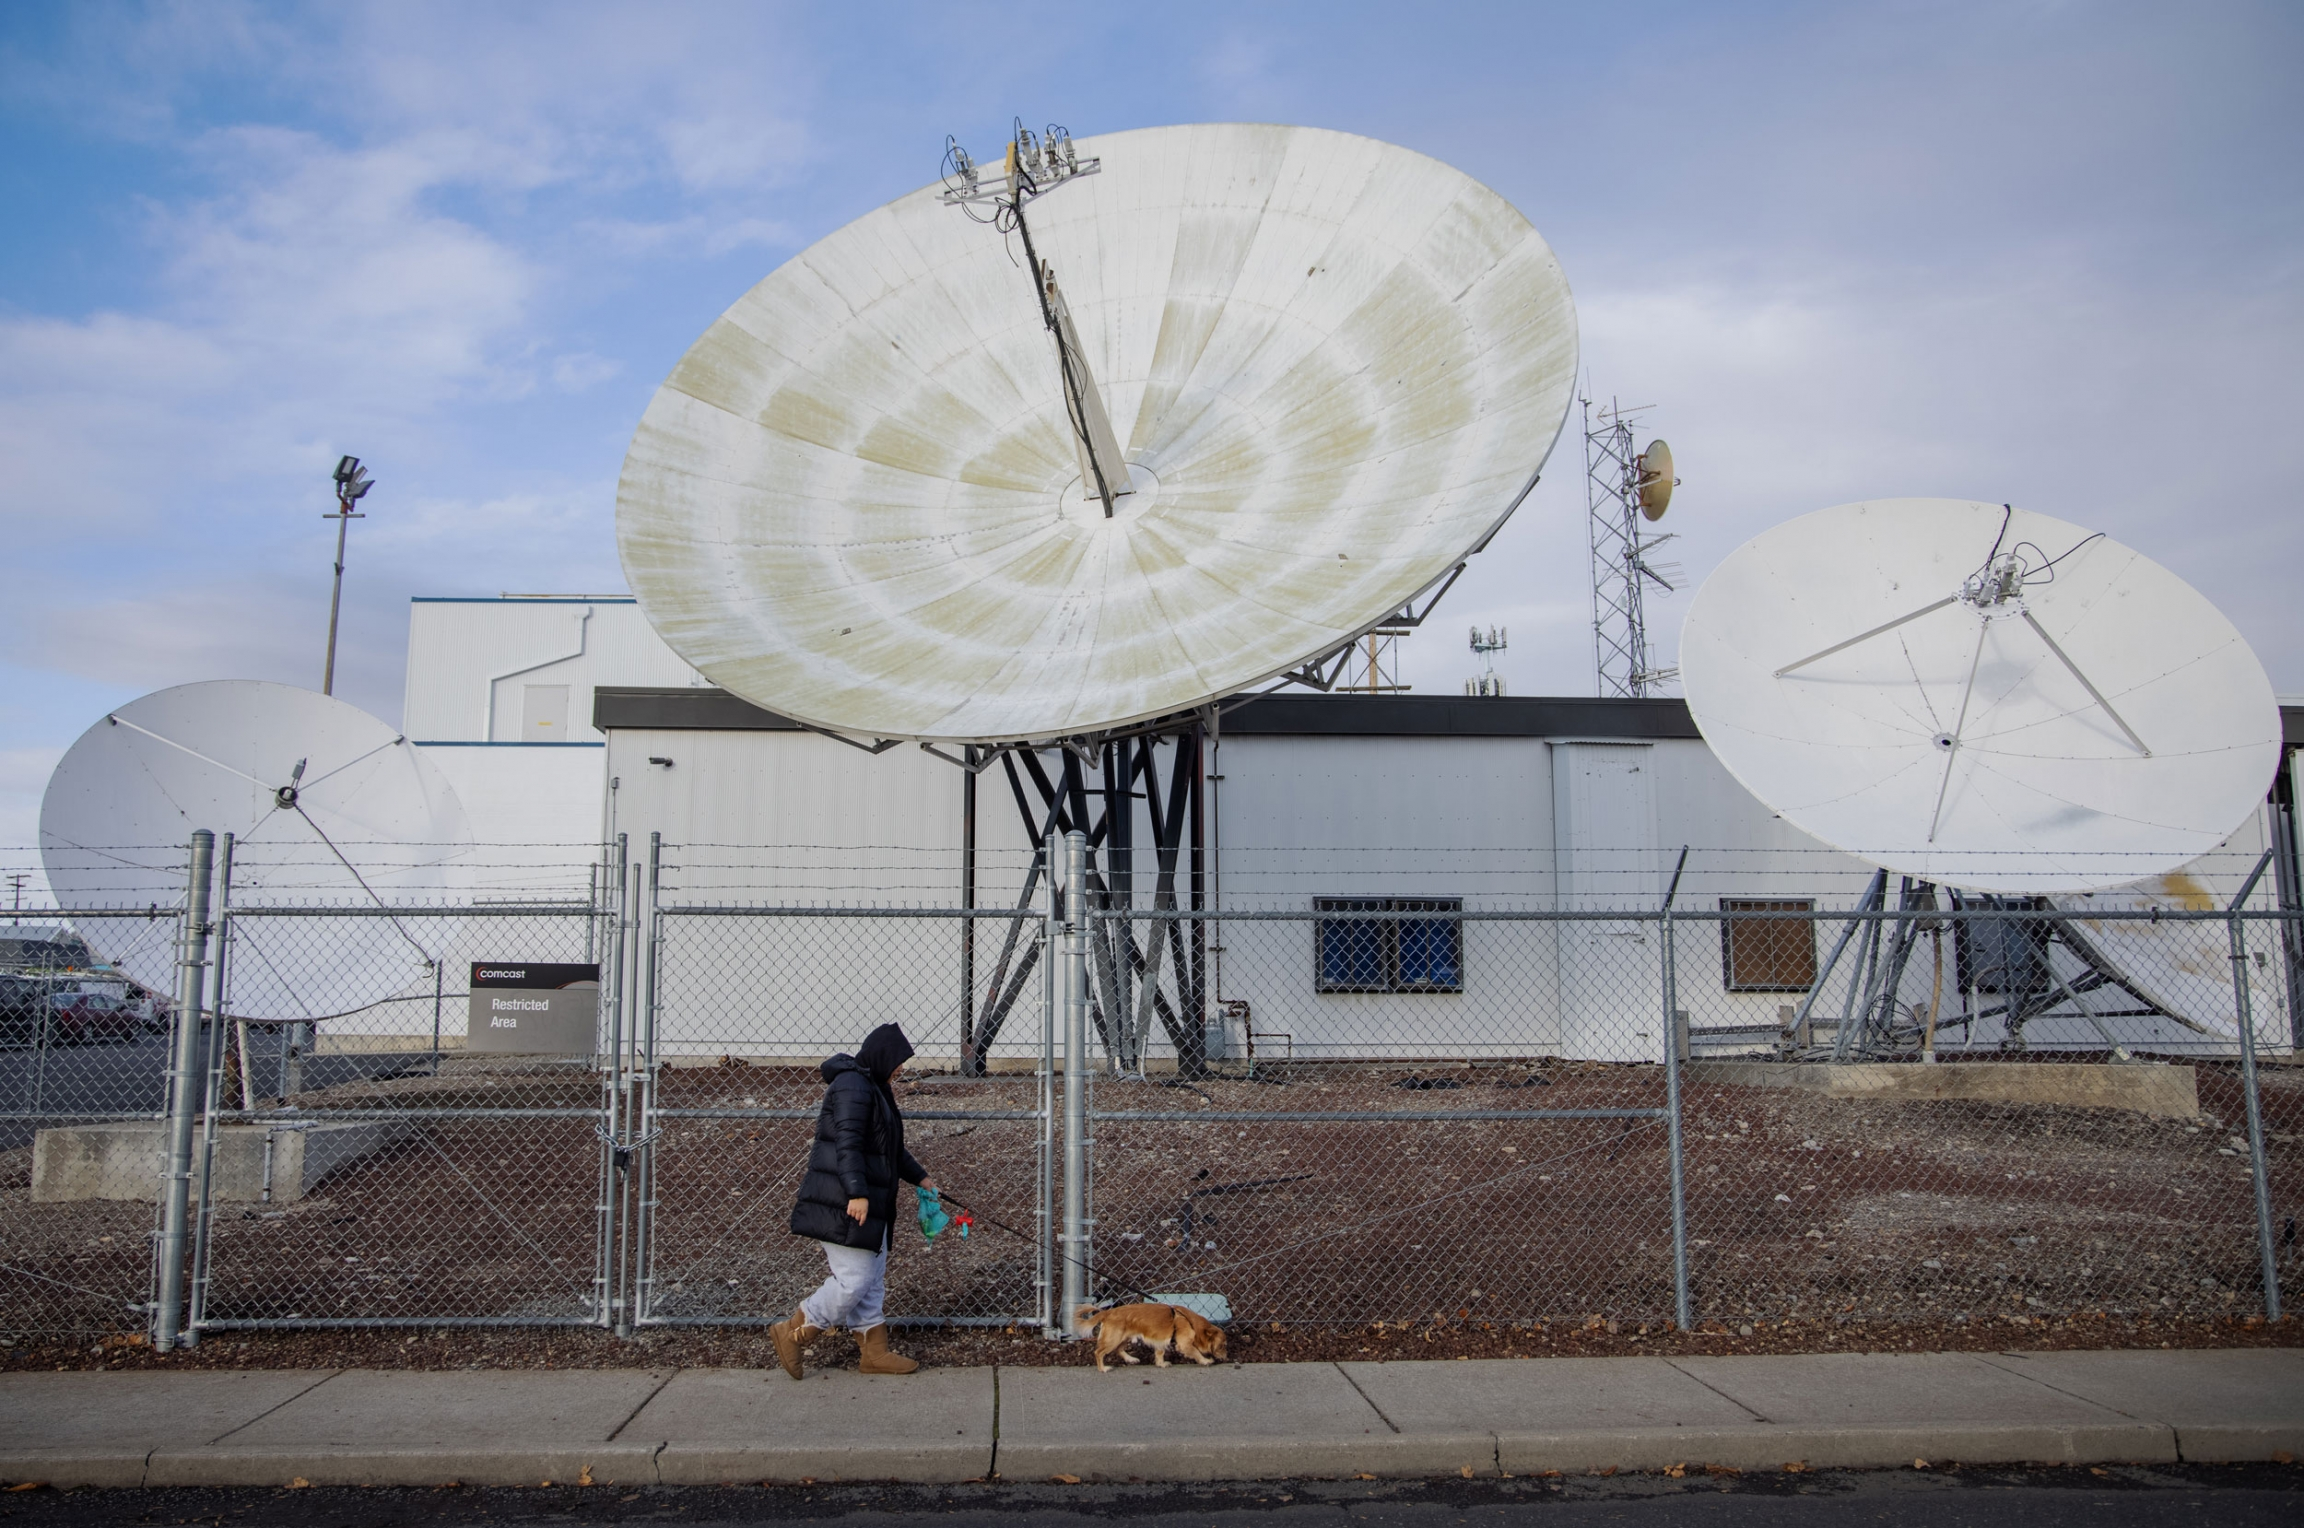 A woman is shown walking a small brown dog with a chain link fence and large satellite dishes in the distance.